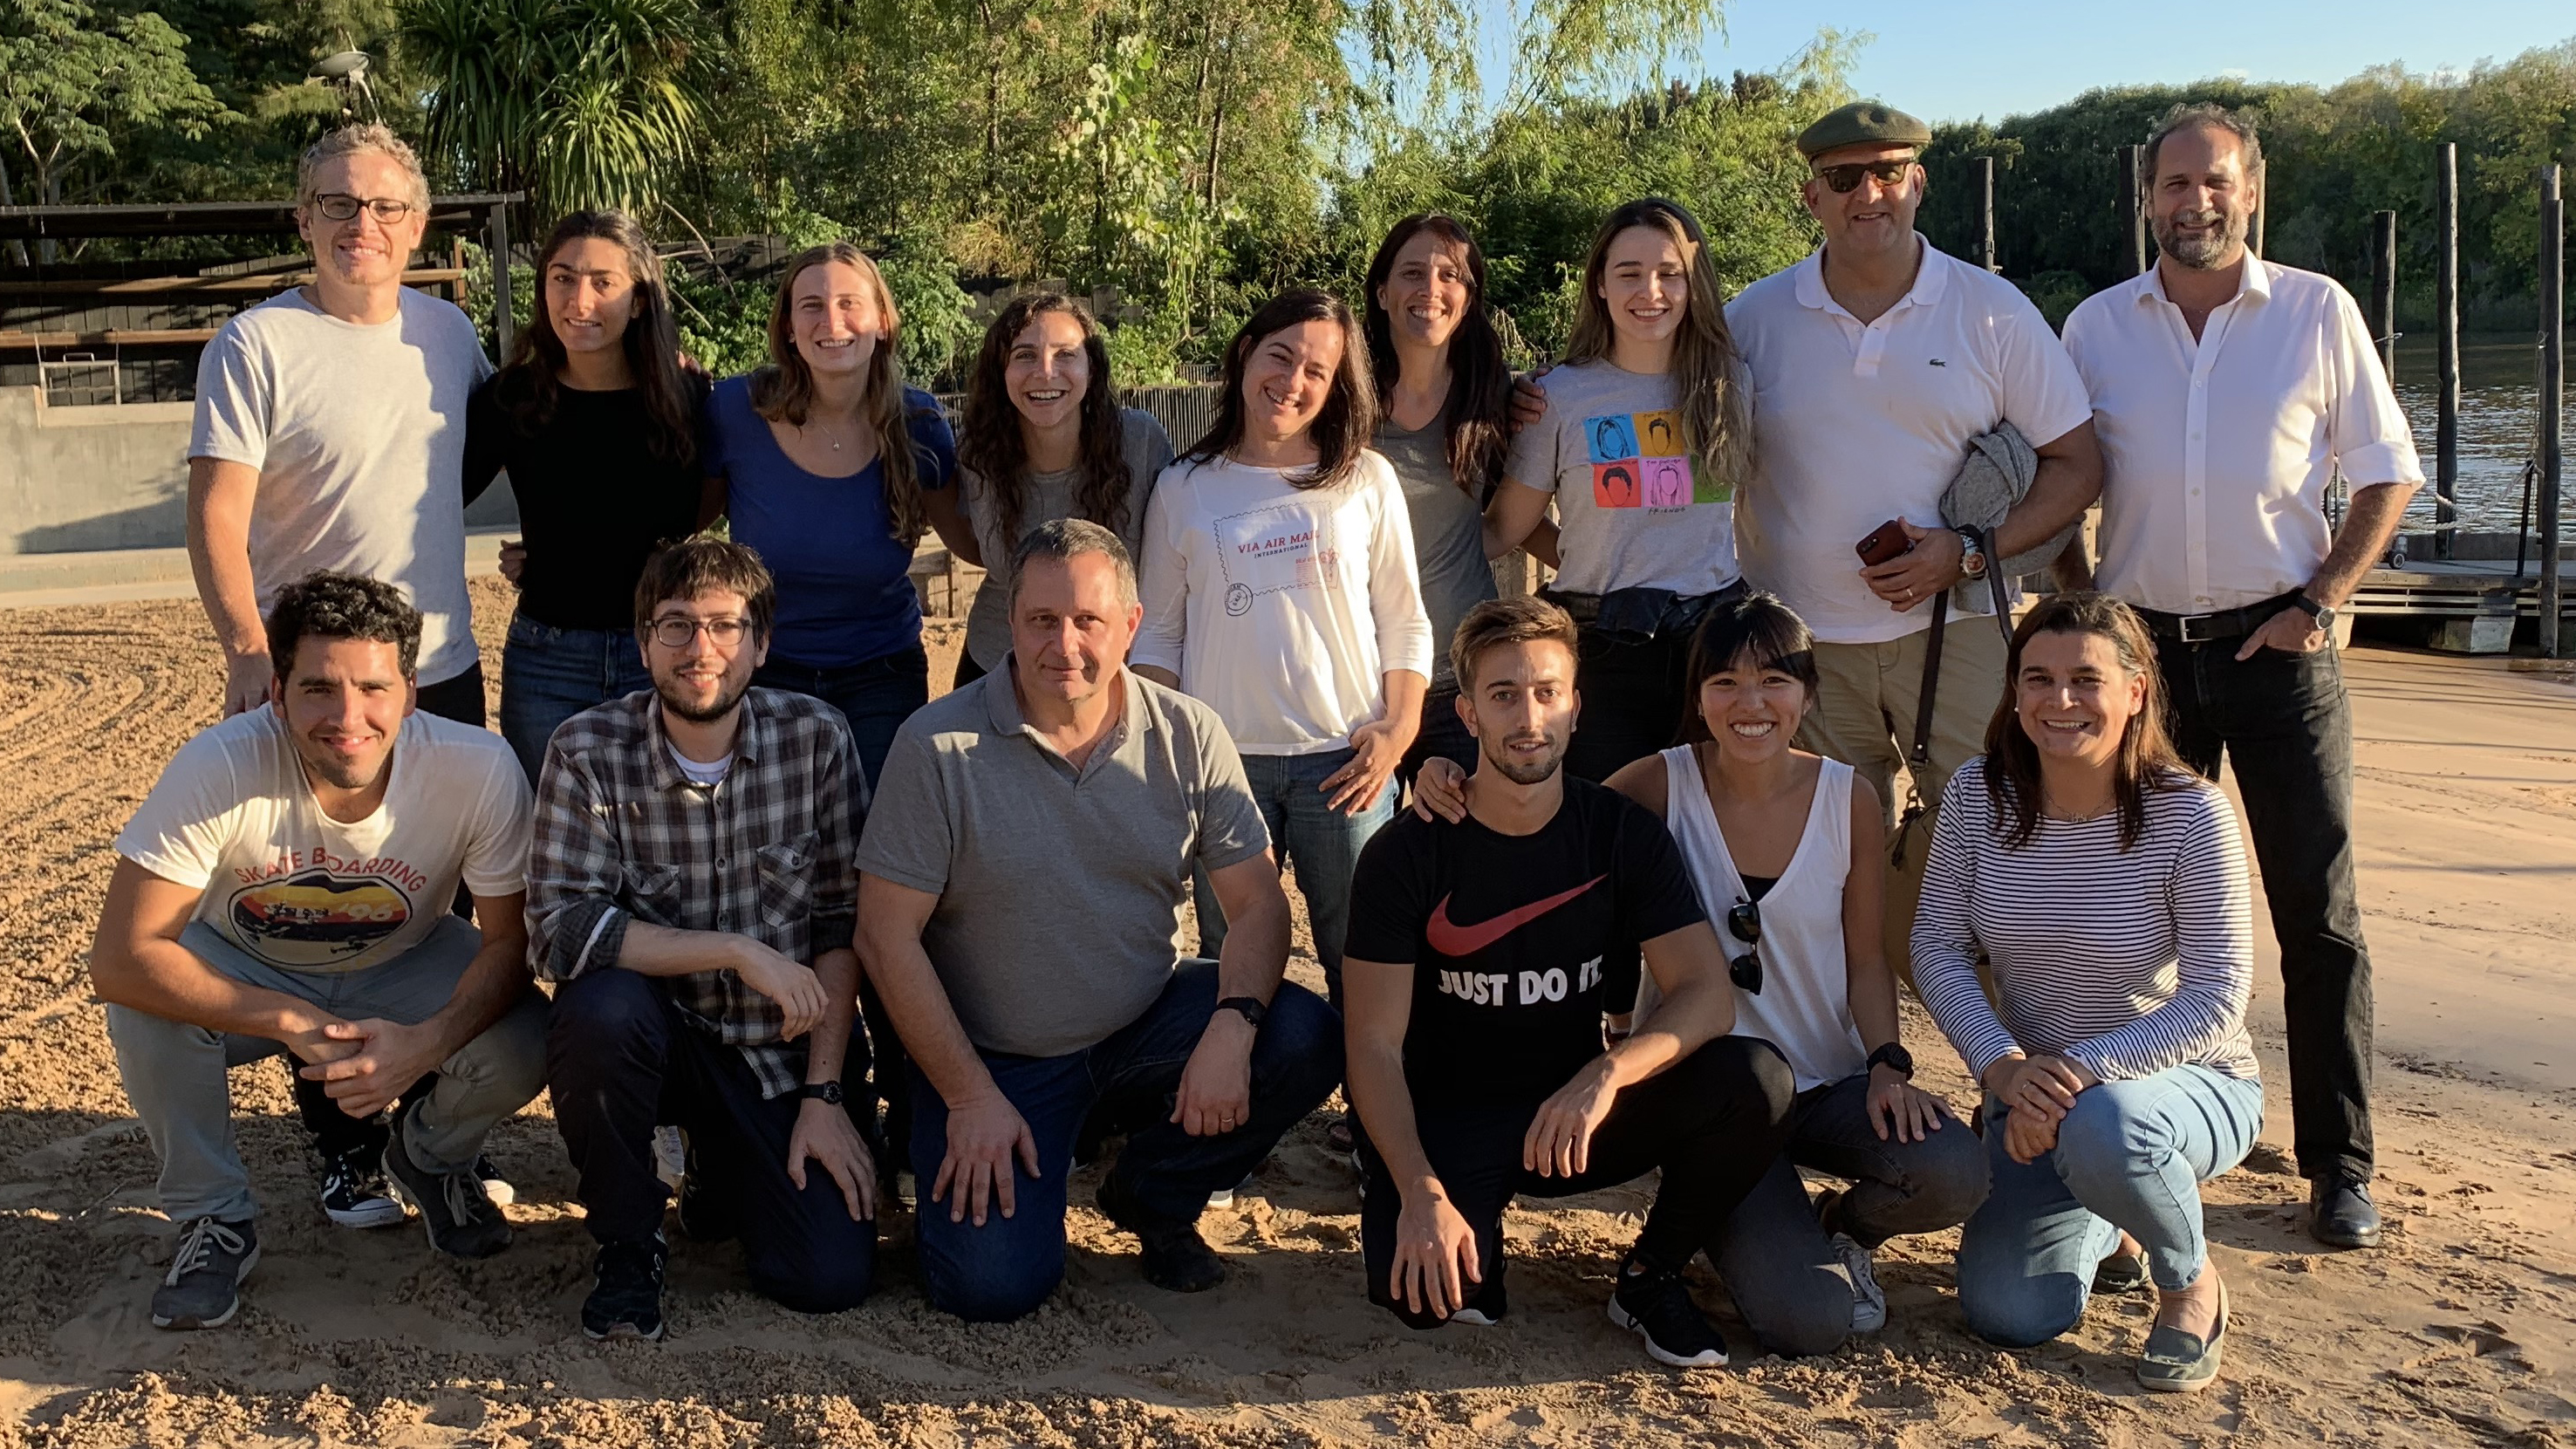 Group portrait of Red/acción's work team.